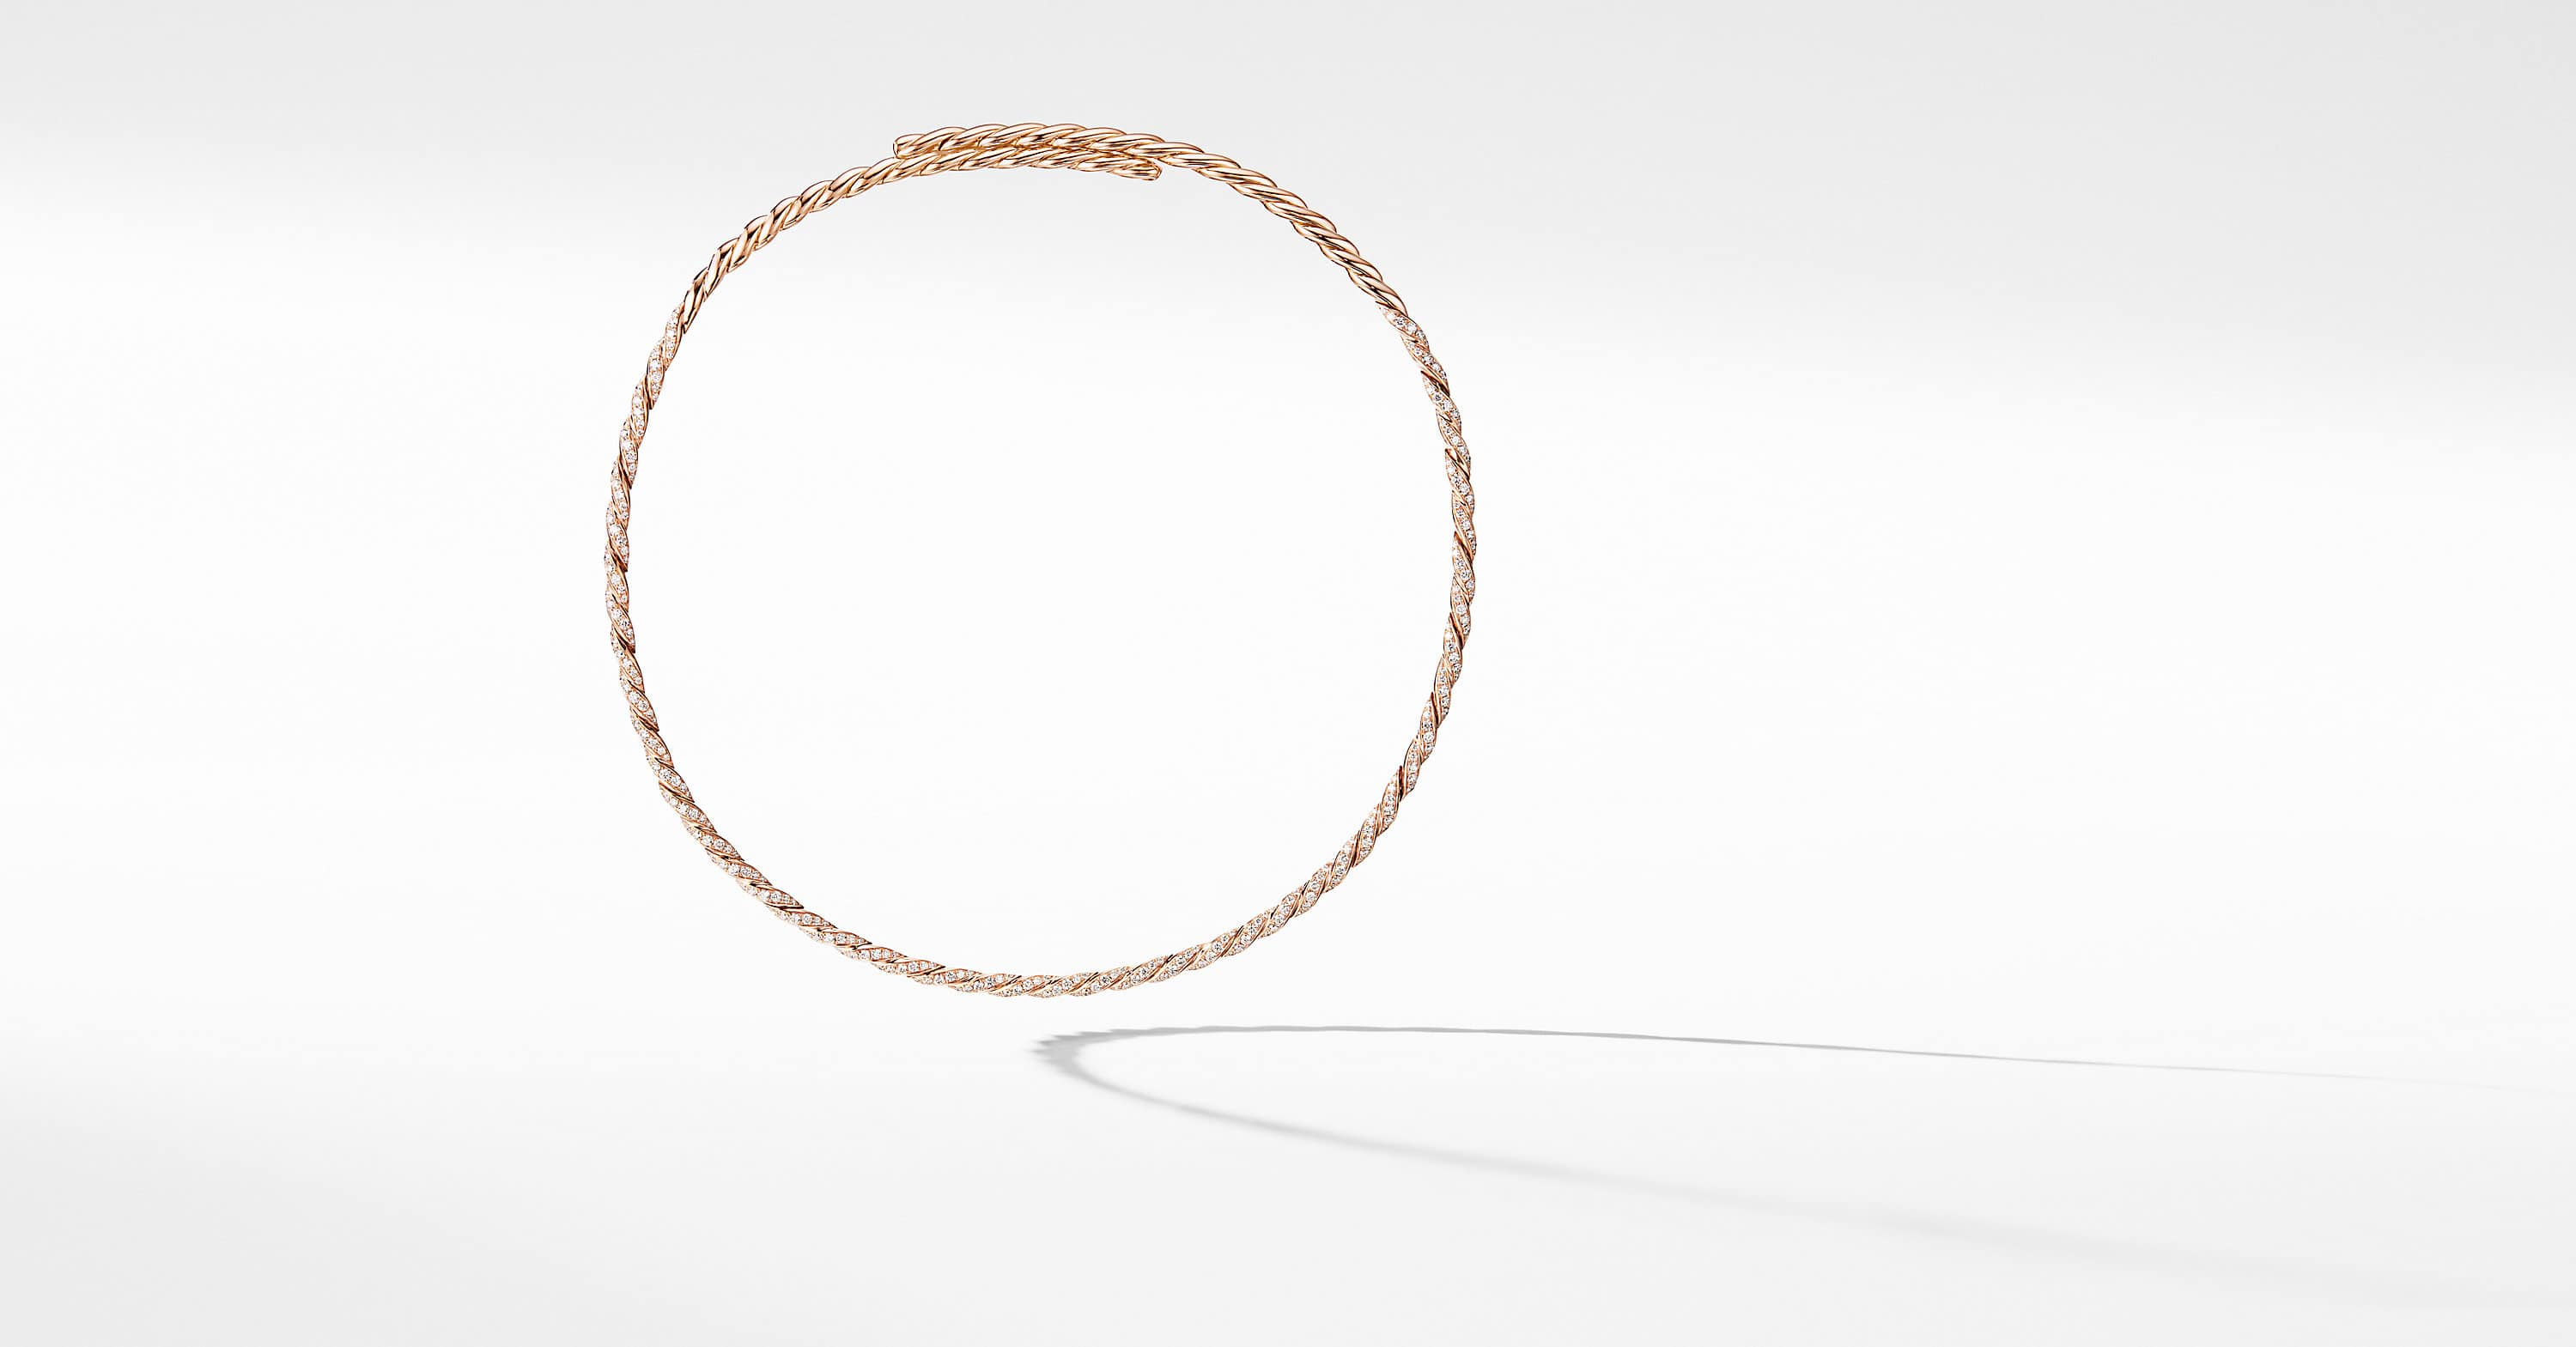 Pavéflex Single Row Necklace with Diamonds in 18K Rose Gold